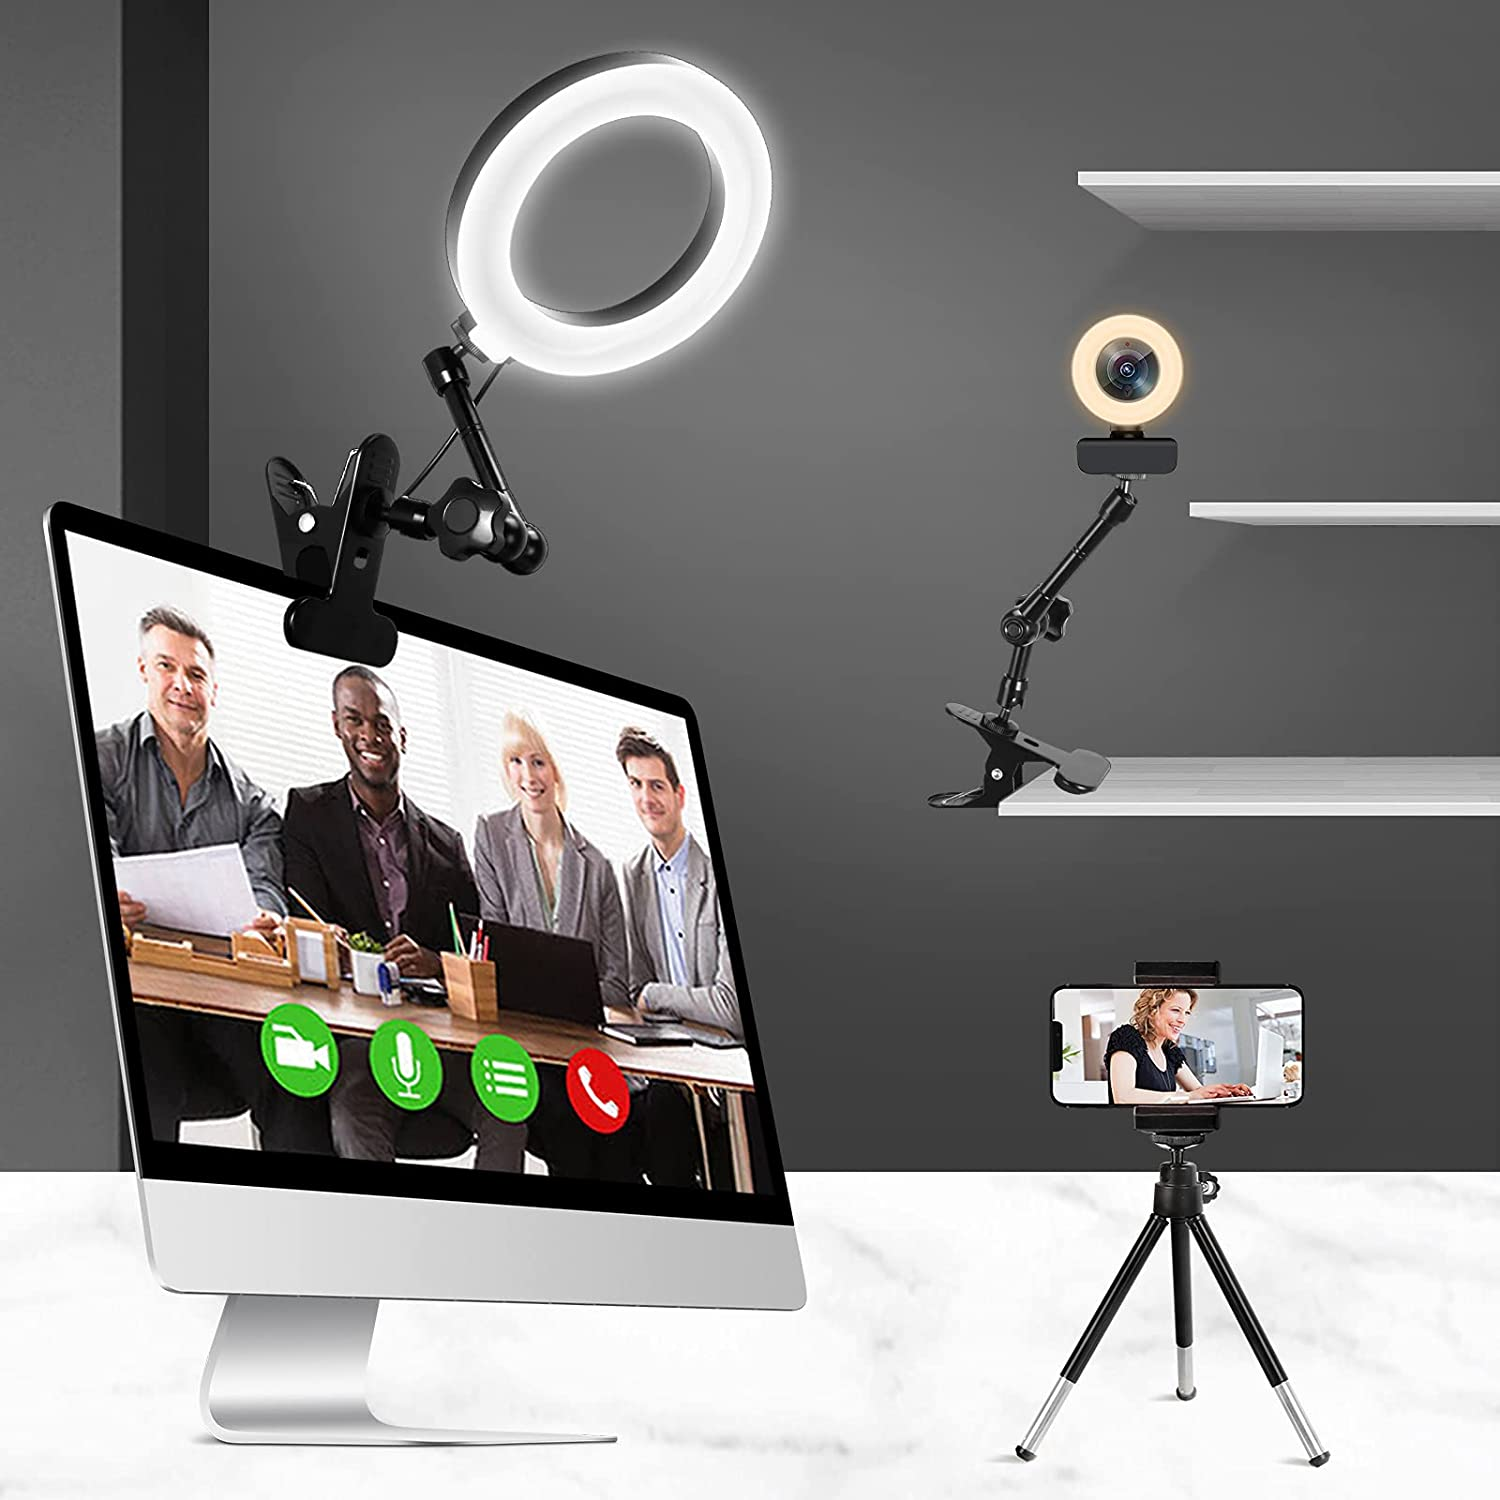 Lusweimi Ring Light for Computer Laptop Video Conference Lighting Kit with Clip&Overhead Tripod, 6